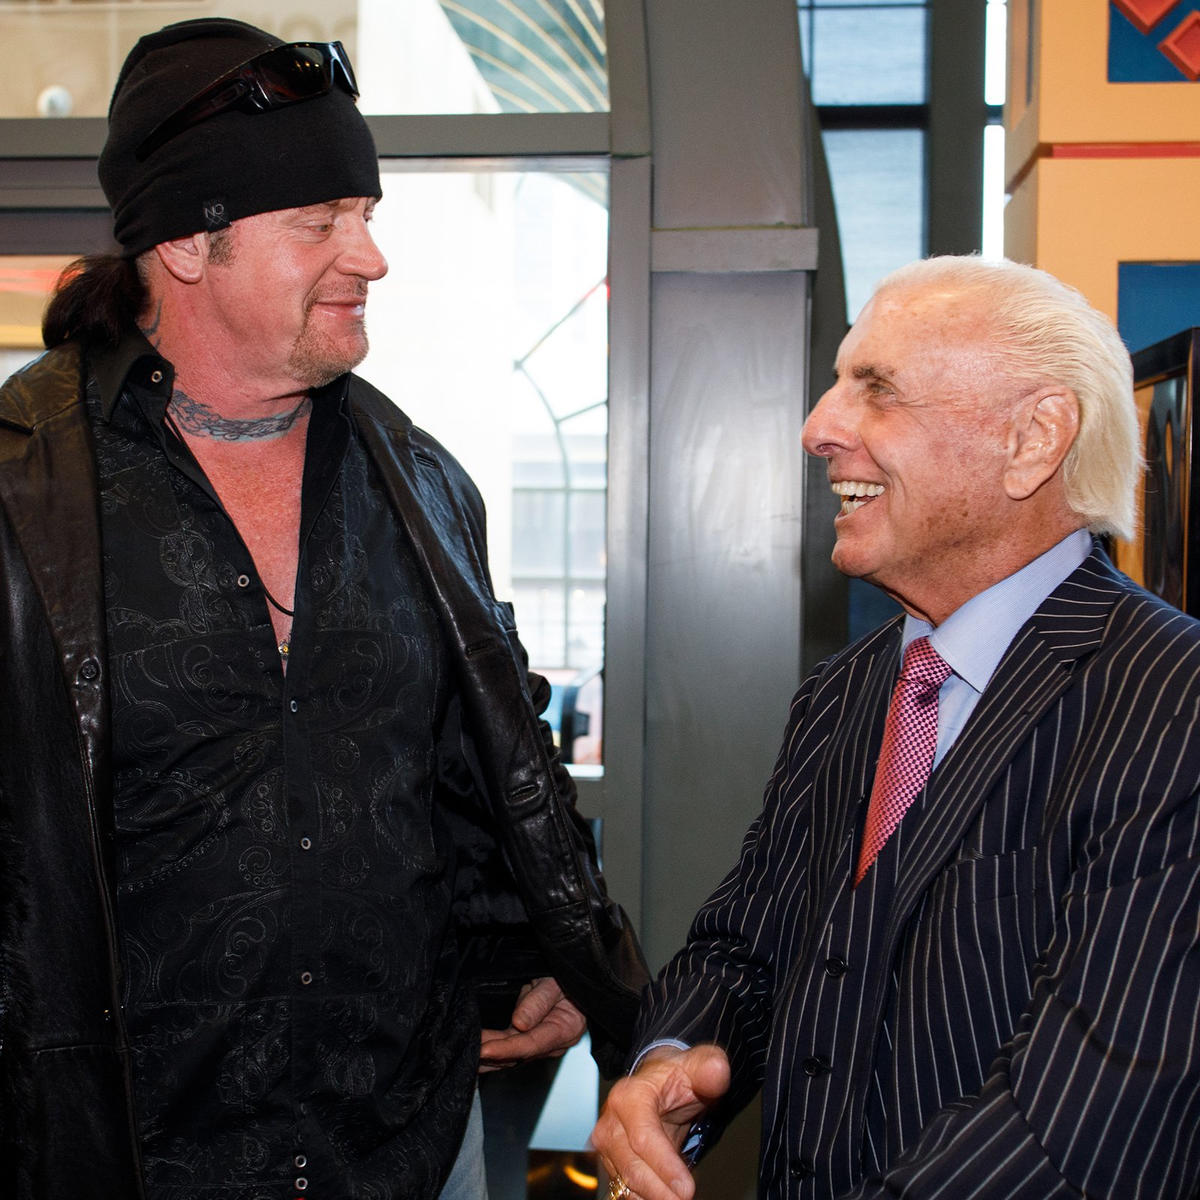 The Undertaker shows his support for the two-time WWE Hall of Famer, Ric Flair.